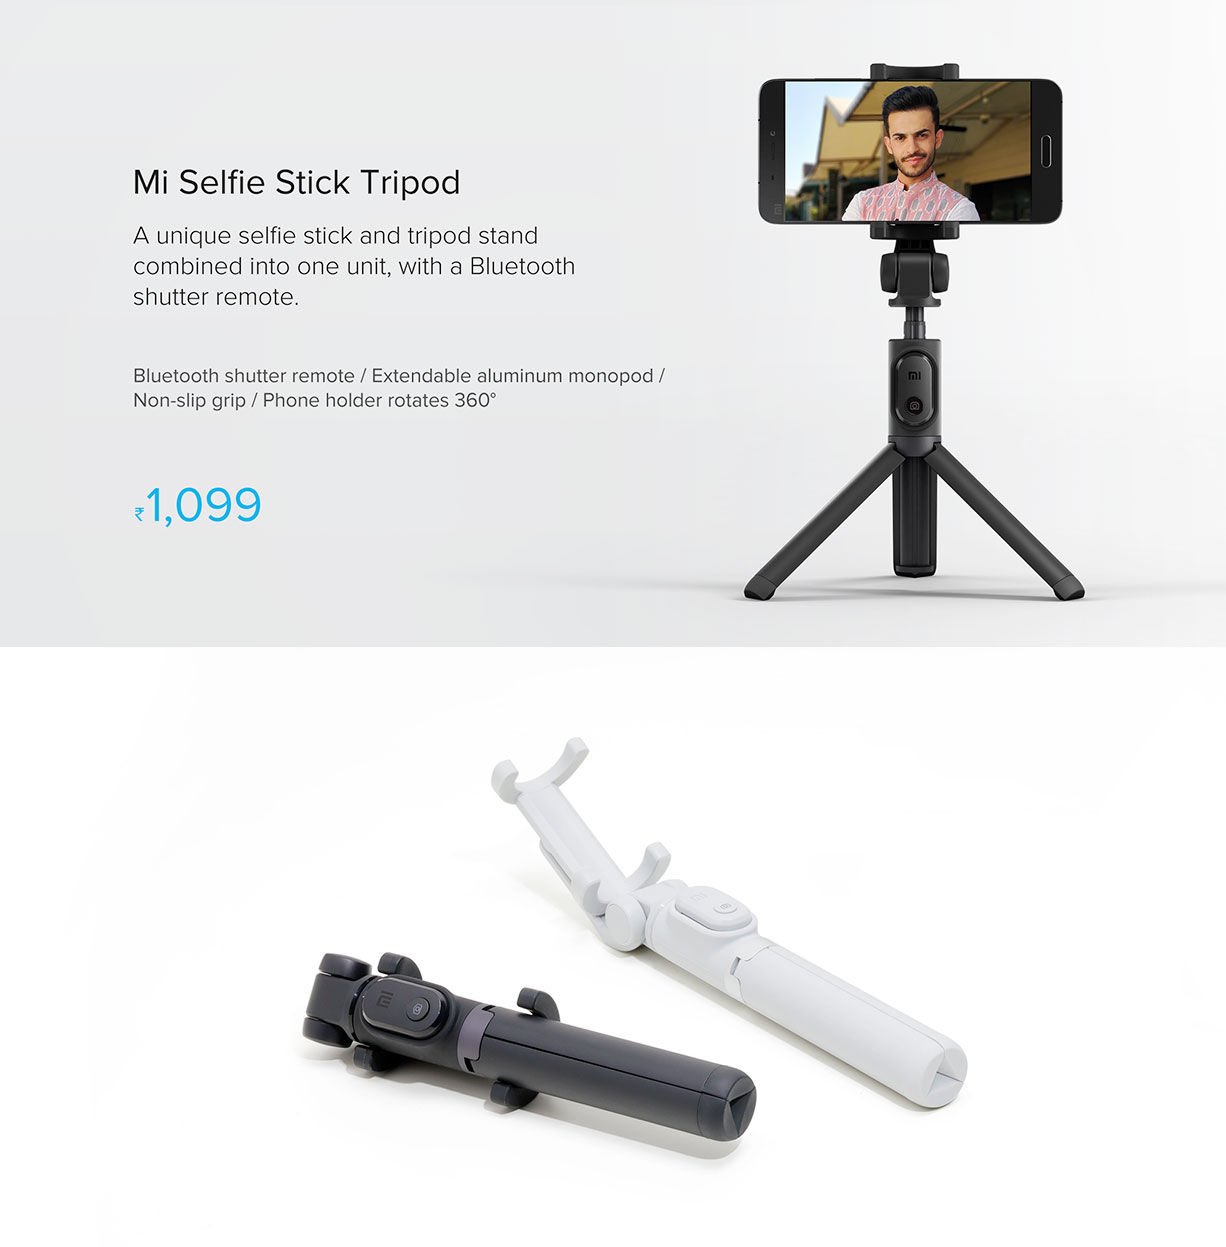 80f78b172ae1c9 Mi Selfie Stick Tripod (with Bluetooth remote) - Selfie Stick - Mi India